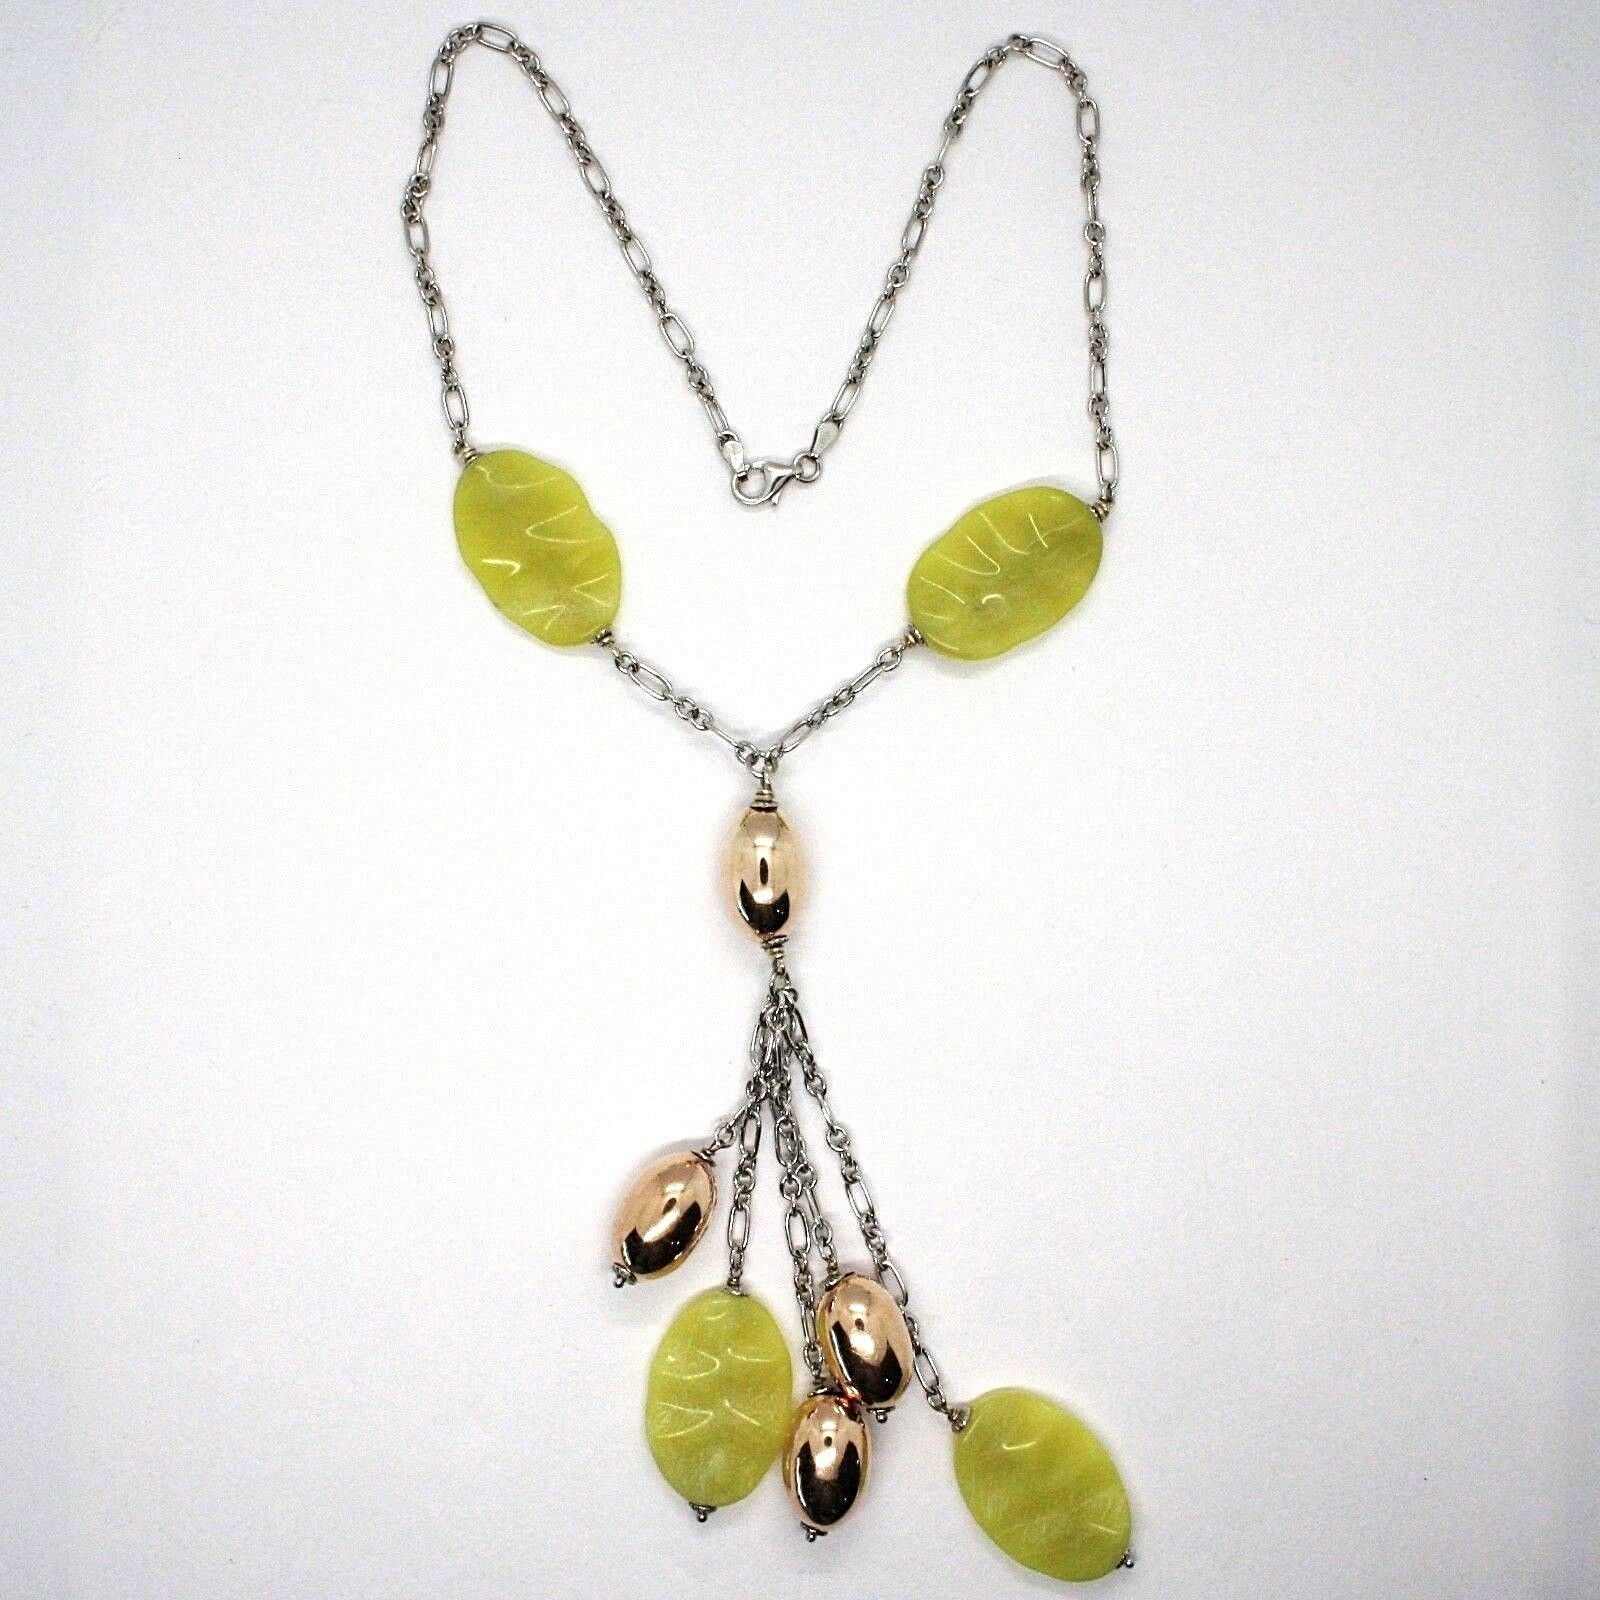 Silver 925 Necklace, Ovals Pink, Jasper Green Wavy, Pendant Bunch